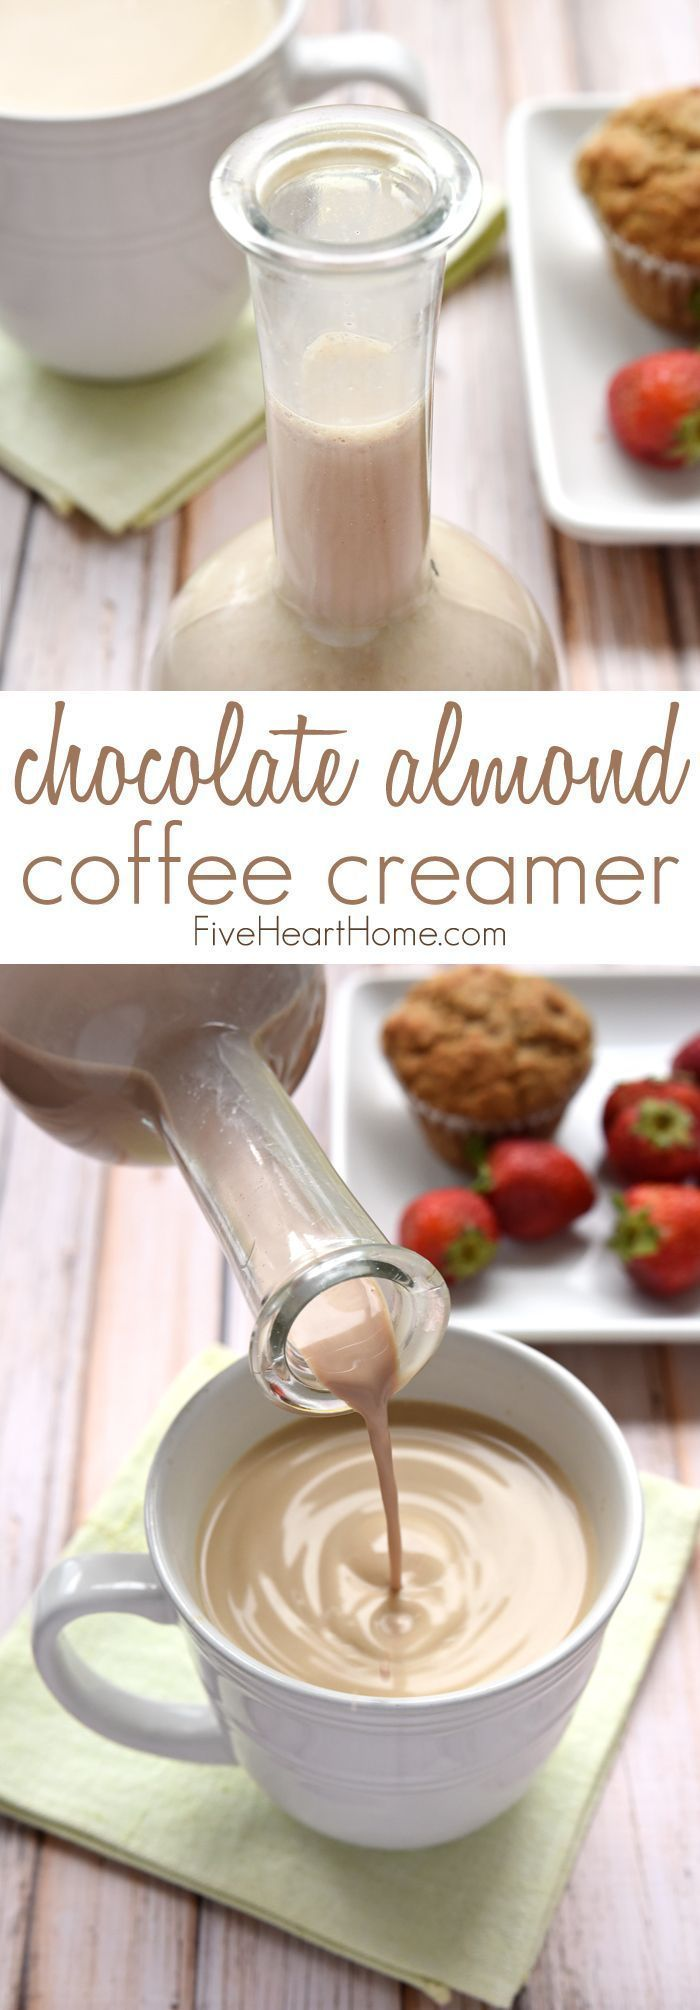 Homemade Chocolate Almond Coffee Creamer ~ this all-natural creamer is sweetened with pure maple syrup and flavored with cocoa powder, almond extract, and vanilla extract for a decadent, delicious way to dress up your morning cup 'o joe! | FiveHeartHome.com